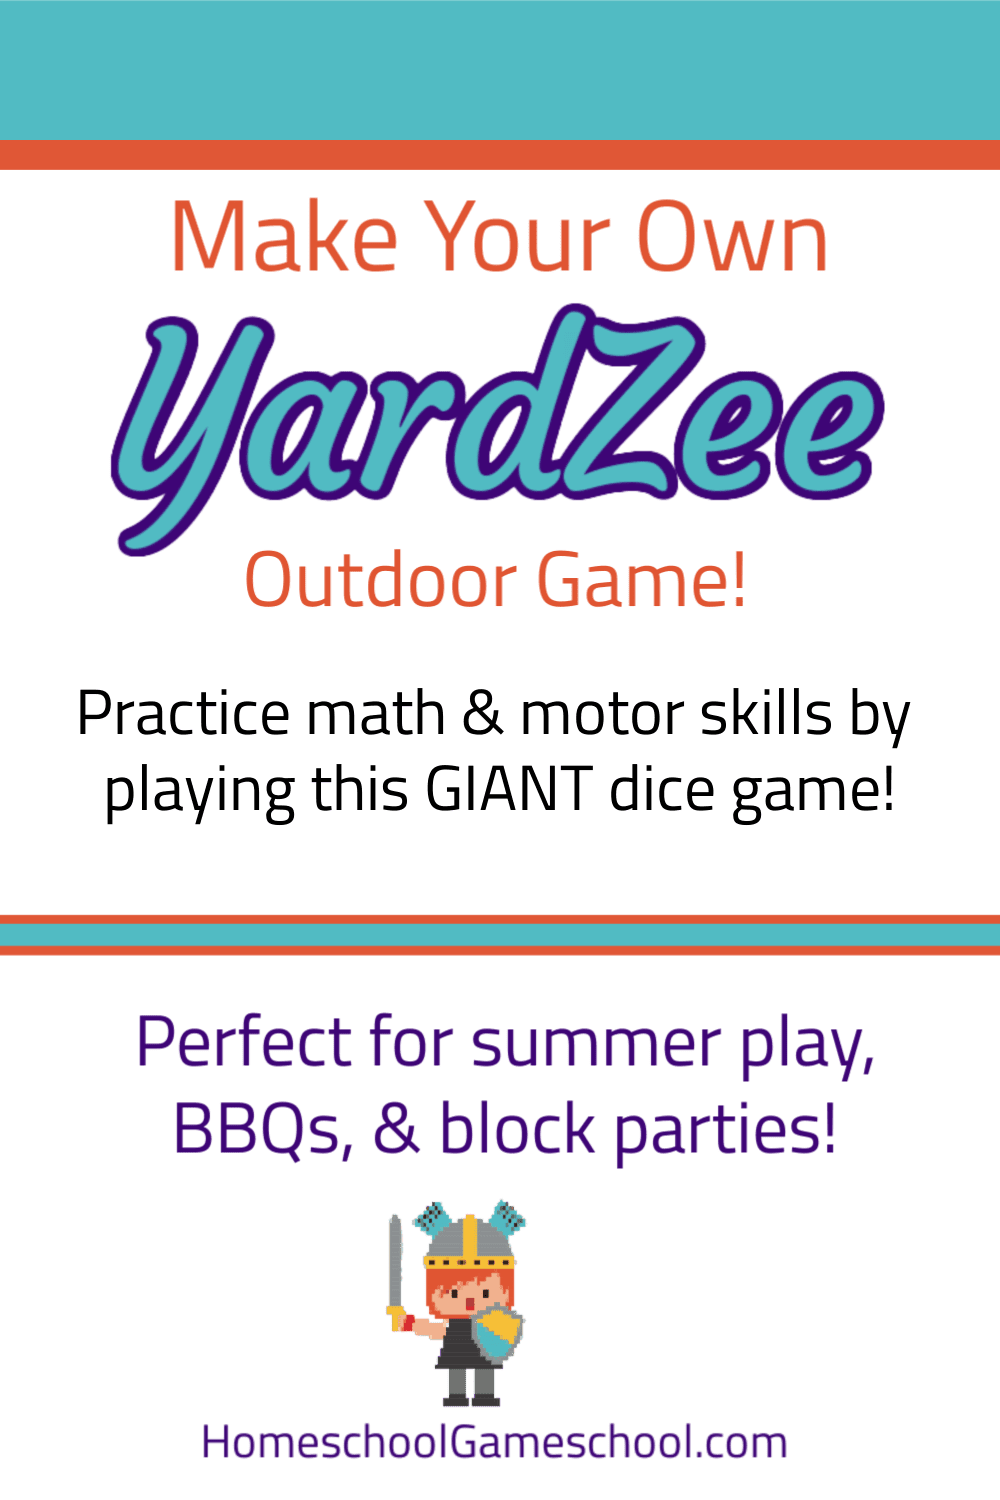 Make Your Own Yardzee Game